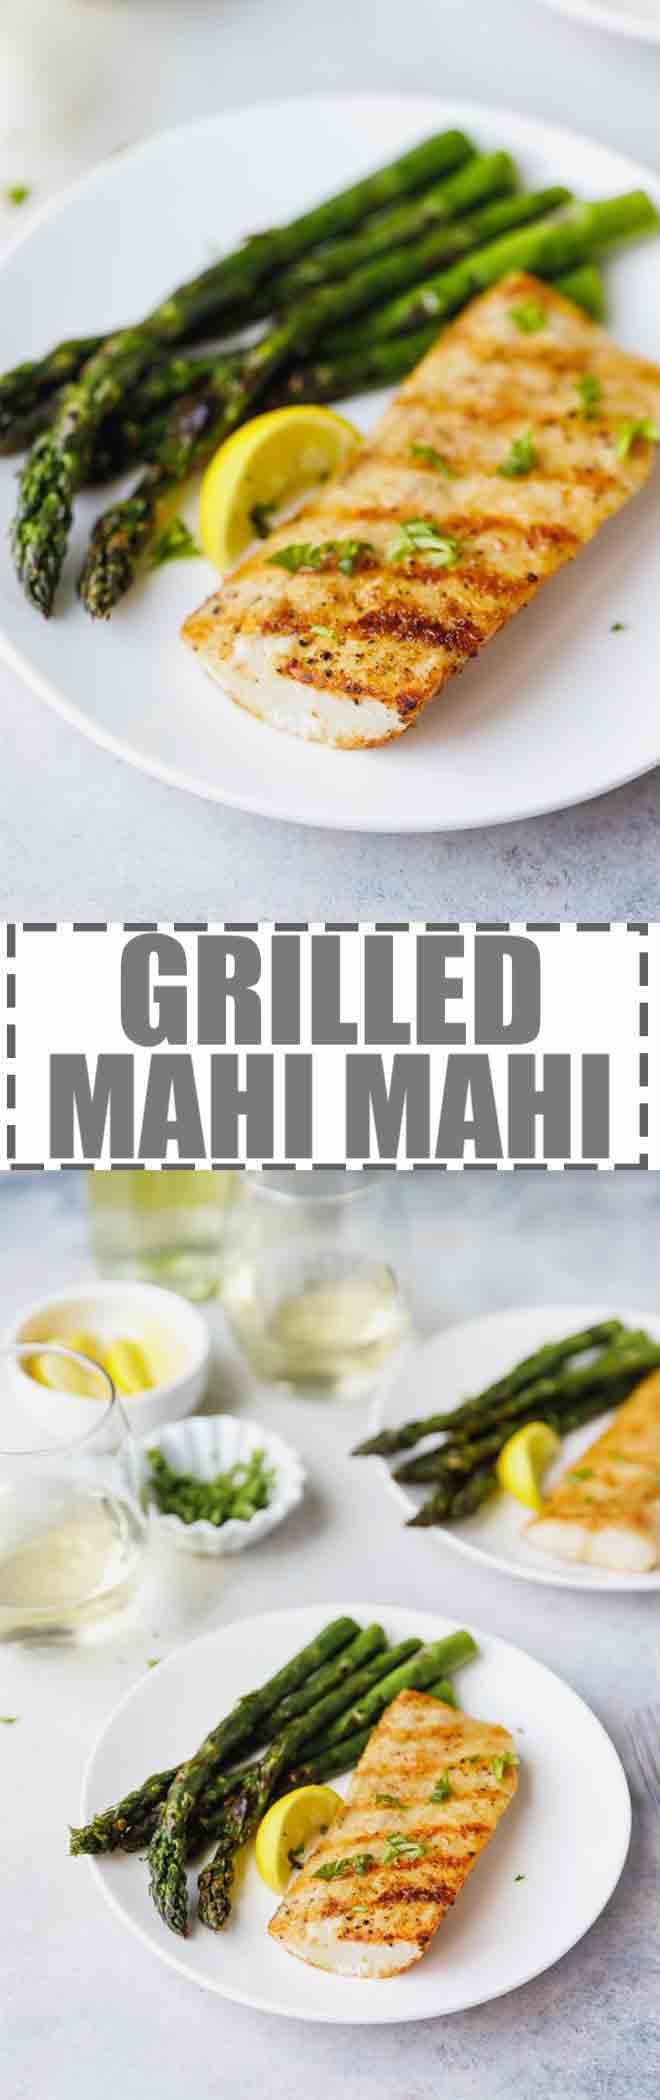 Easy Grilled Mahi Mahi Recipe - simple and delicious way to prepare white fish. Served with grilled asparagus or other vegetables of your choice. Paired with a glass of Vinho Verde Estreia. Perfect for Summer, Grilling Season and 4th of July! #mahimahi #grilling